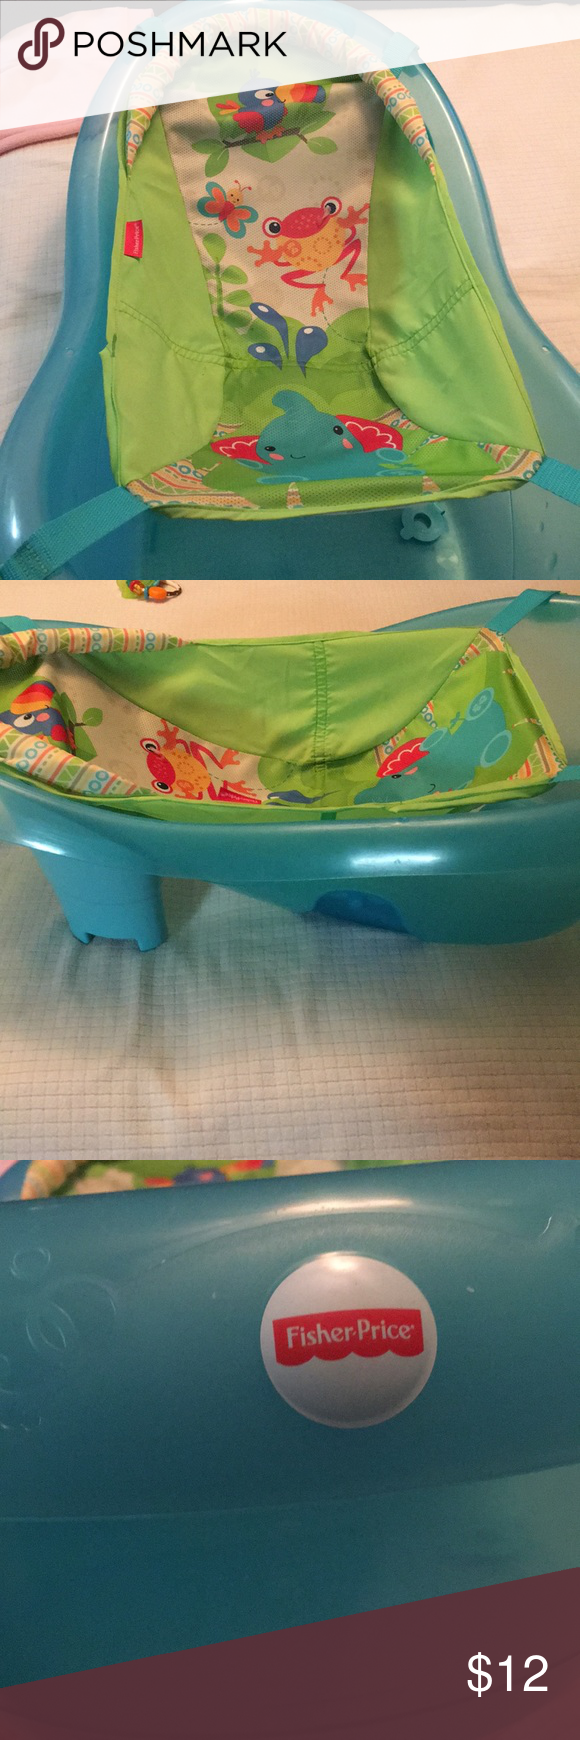 Baby bathtub used once! Converts from newborn to toddler with drain ...